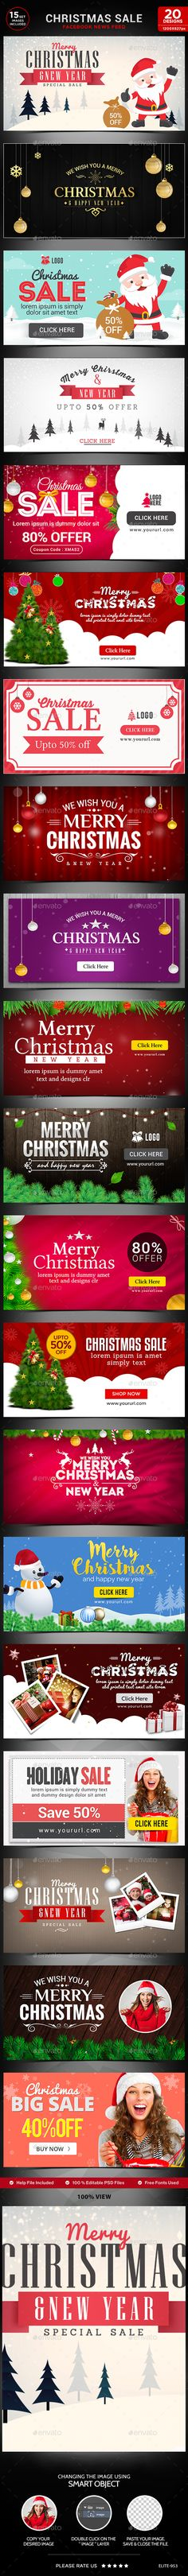 Christmas Sale Facebook Newsfeed Images 20 Designs Template Psd Design Download Http